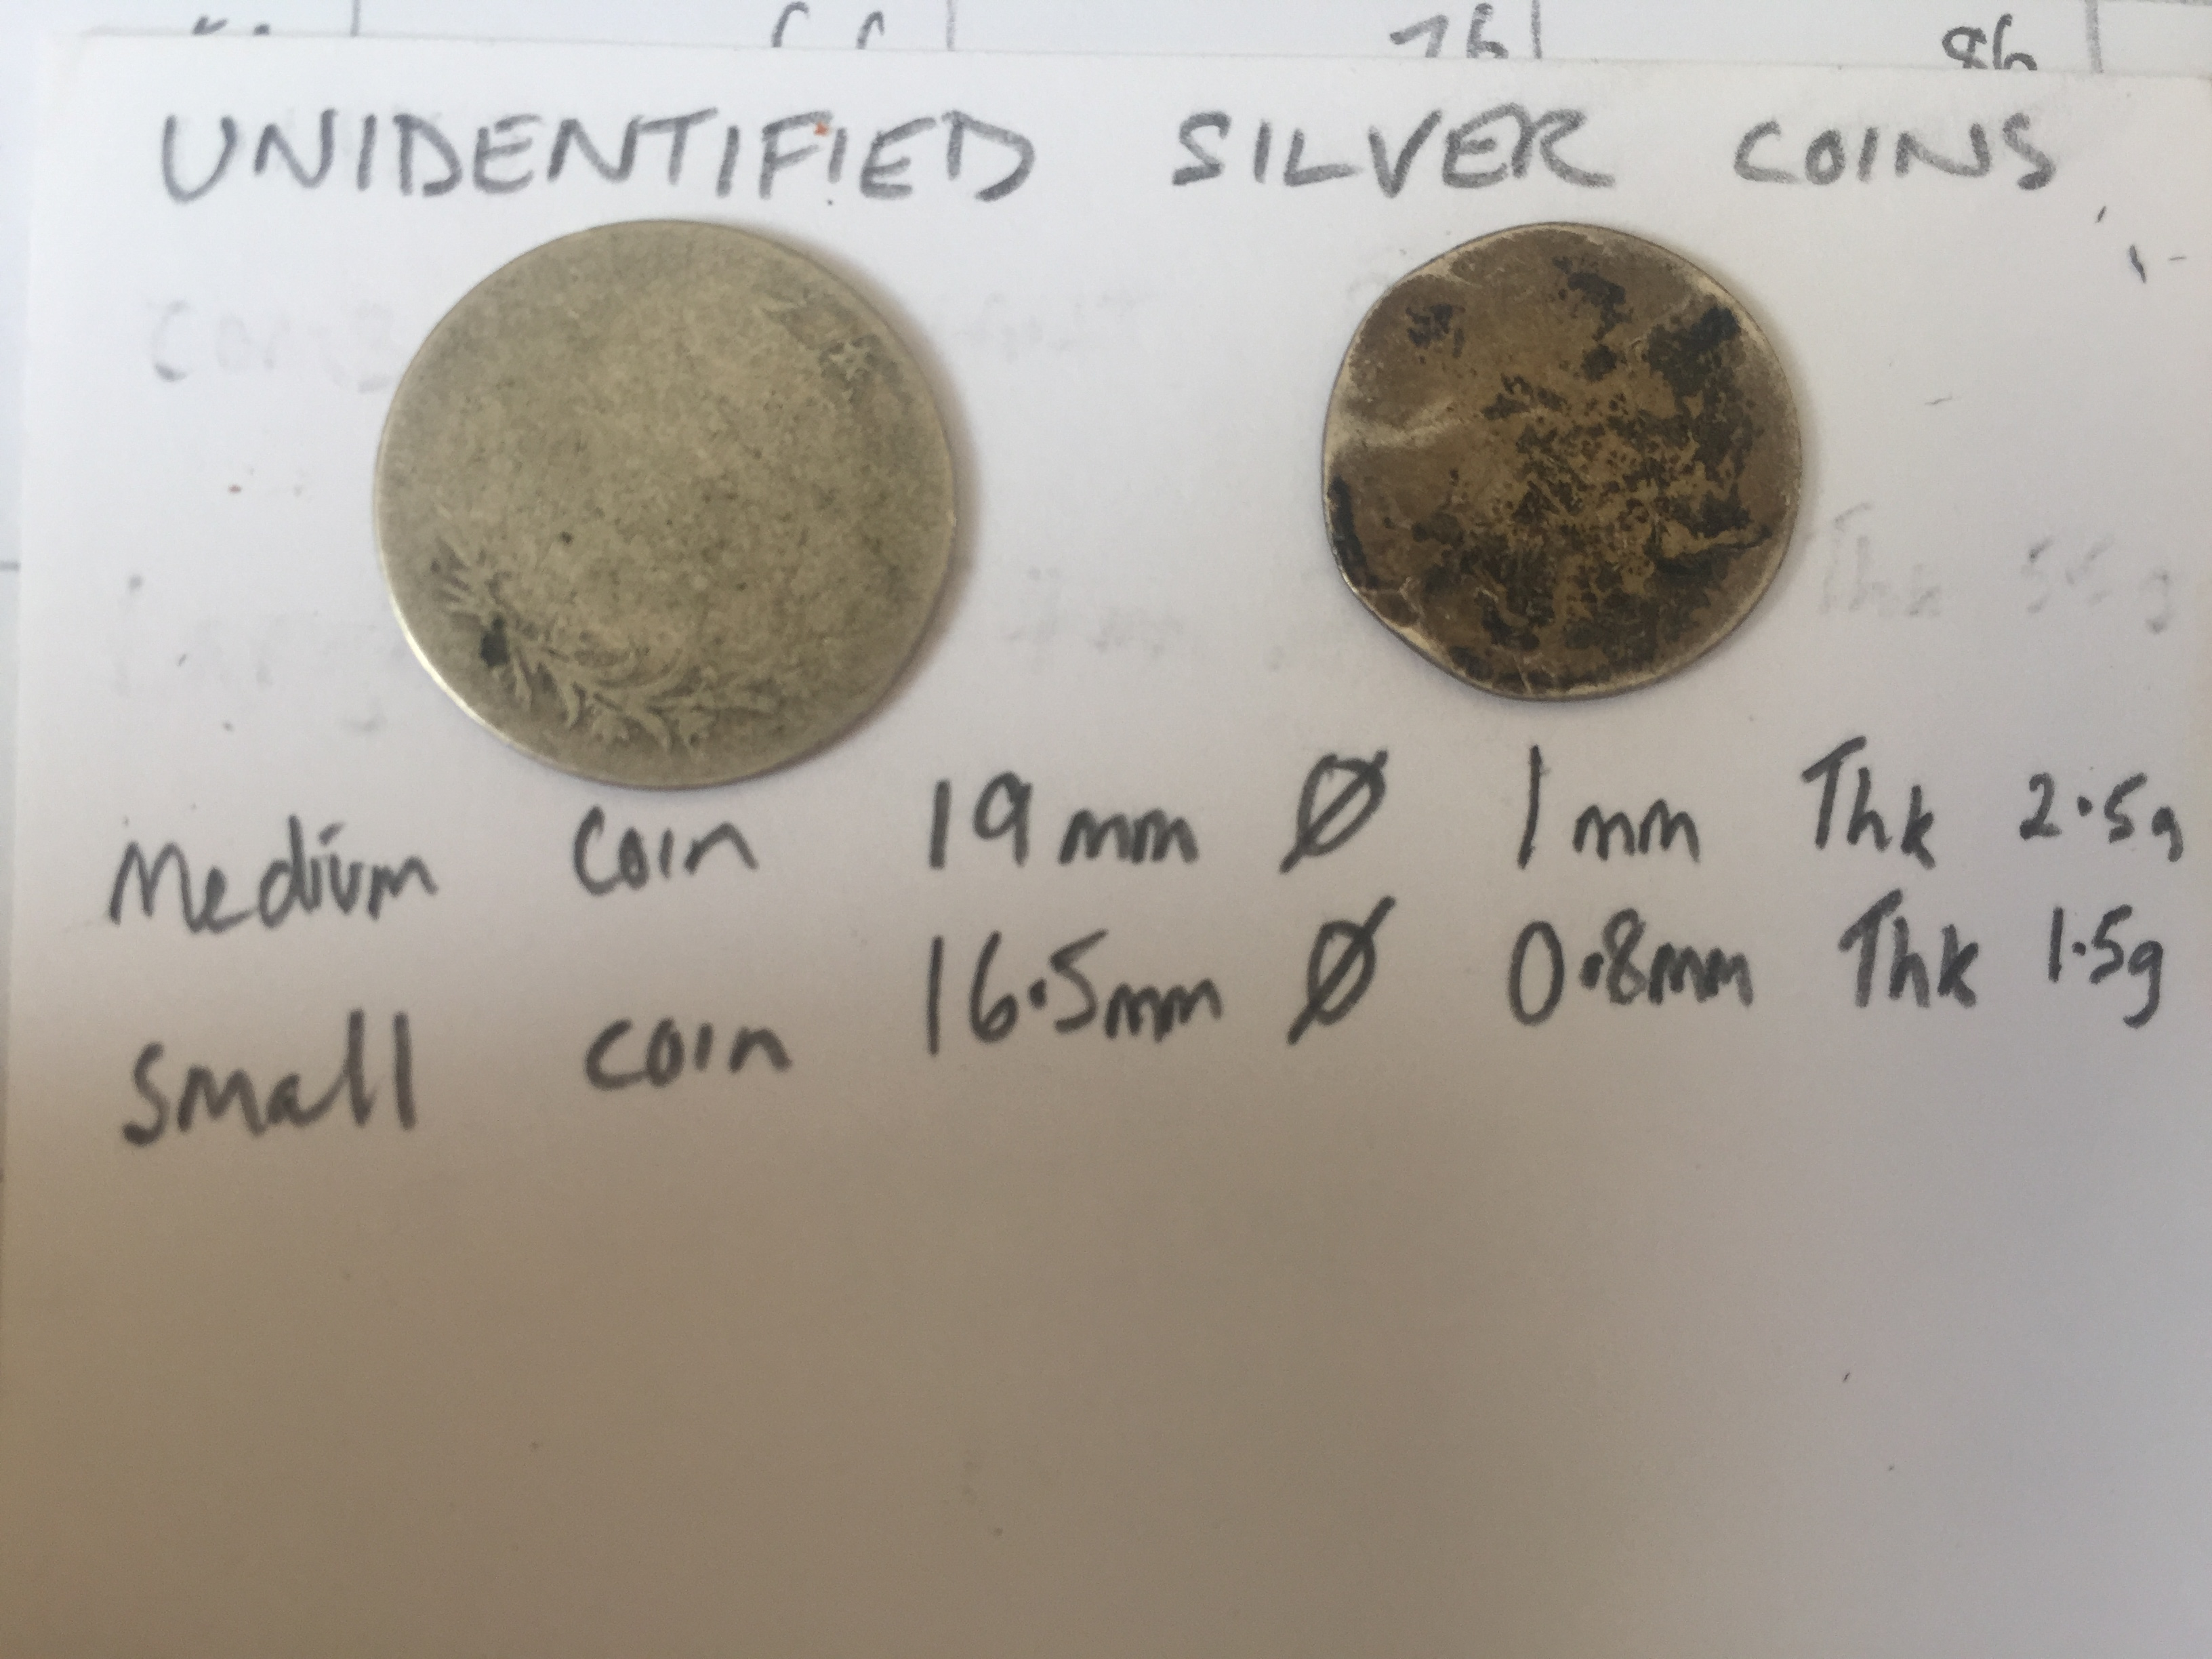 Please help me identify these heavily worn silver coins